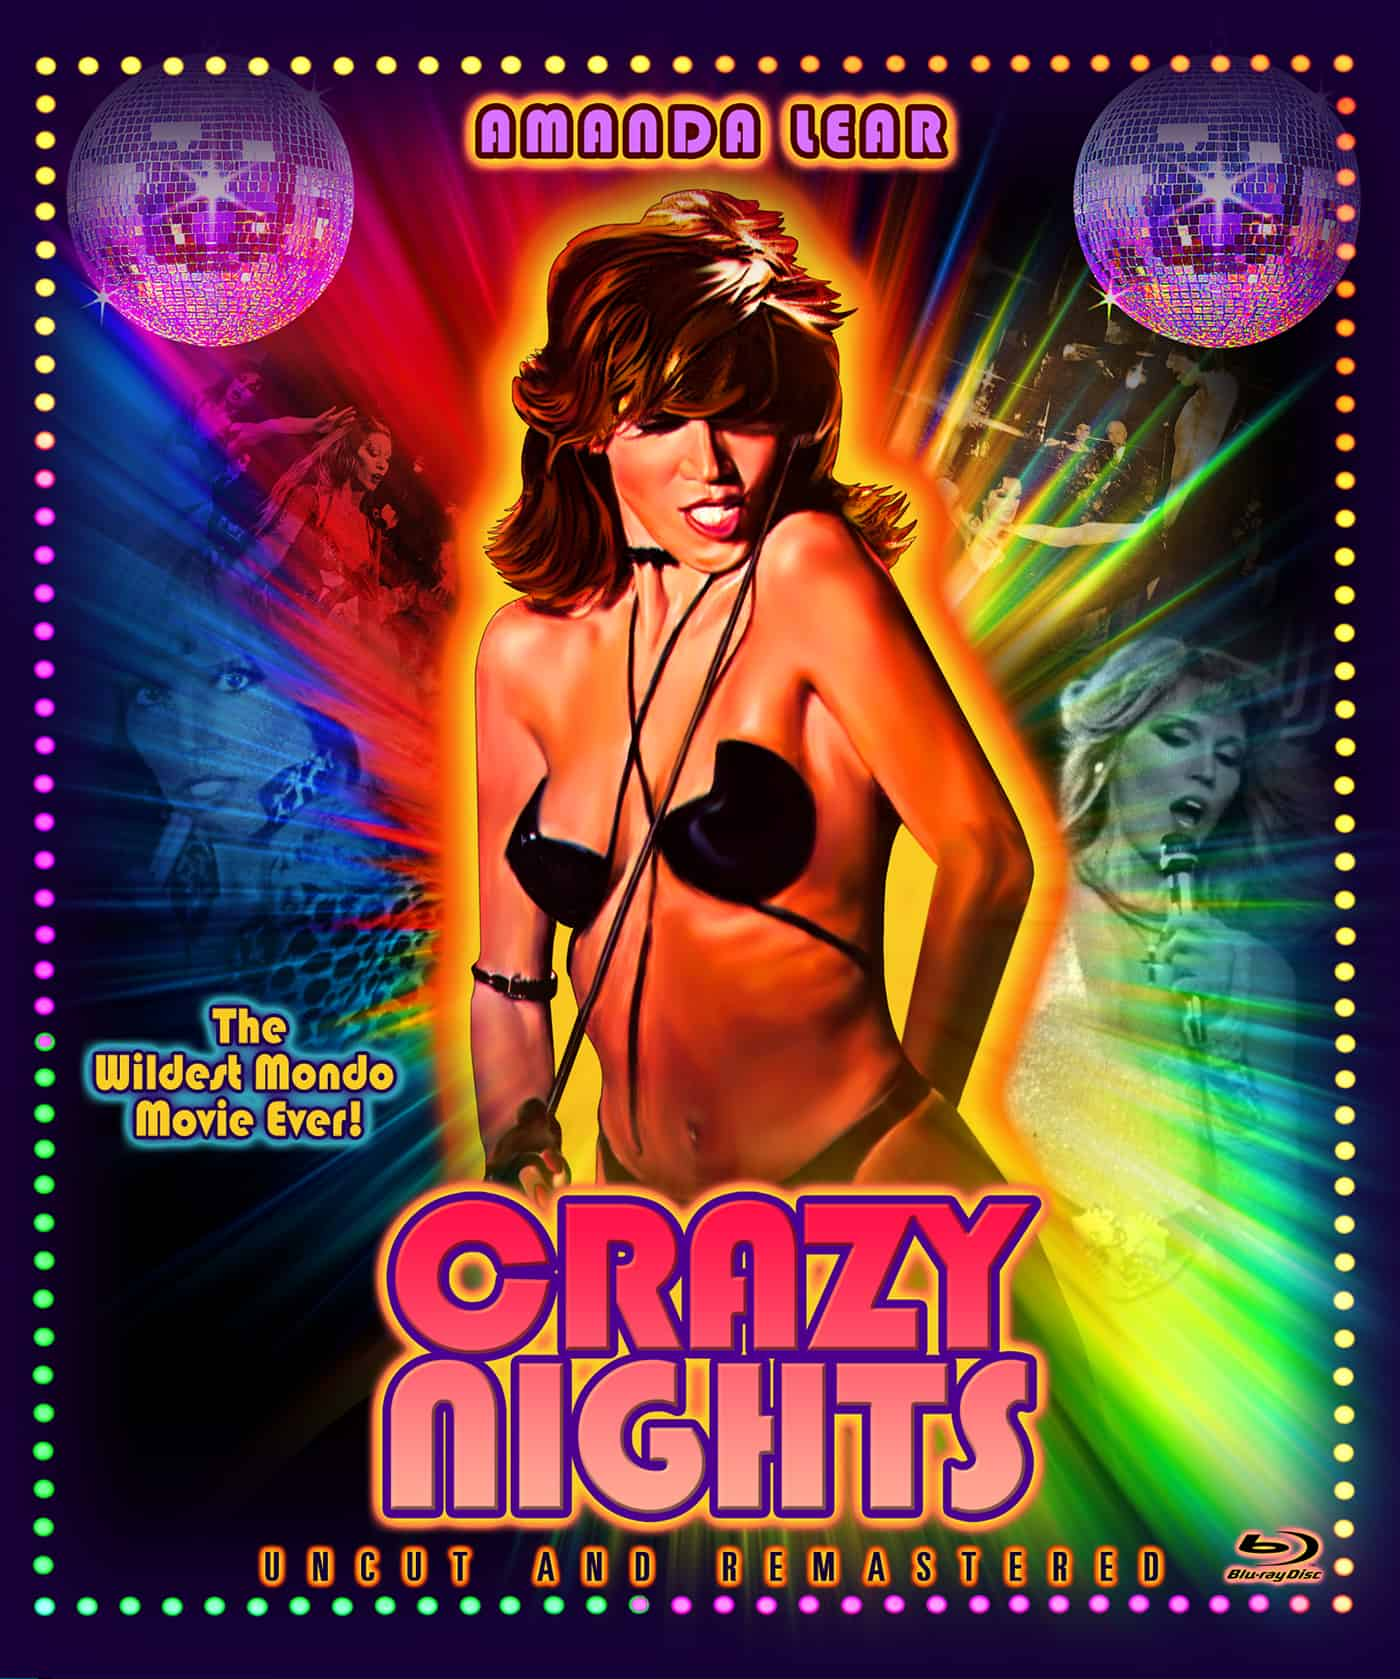 Crazy Nights September 2021 Close Out